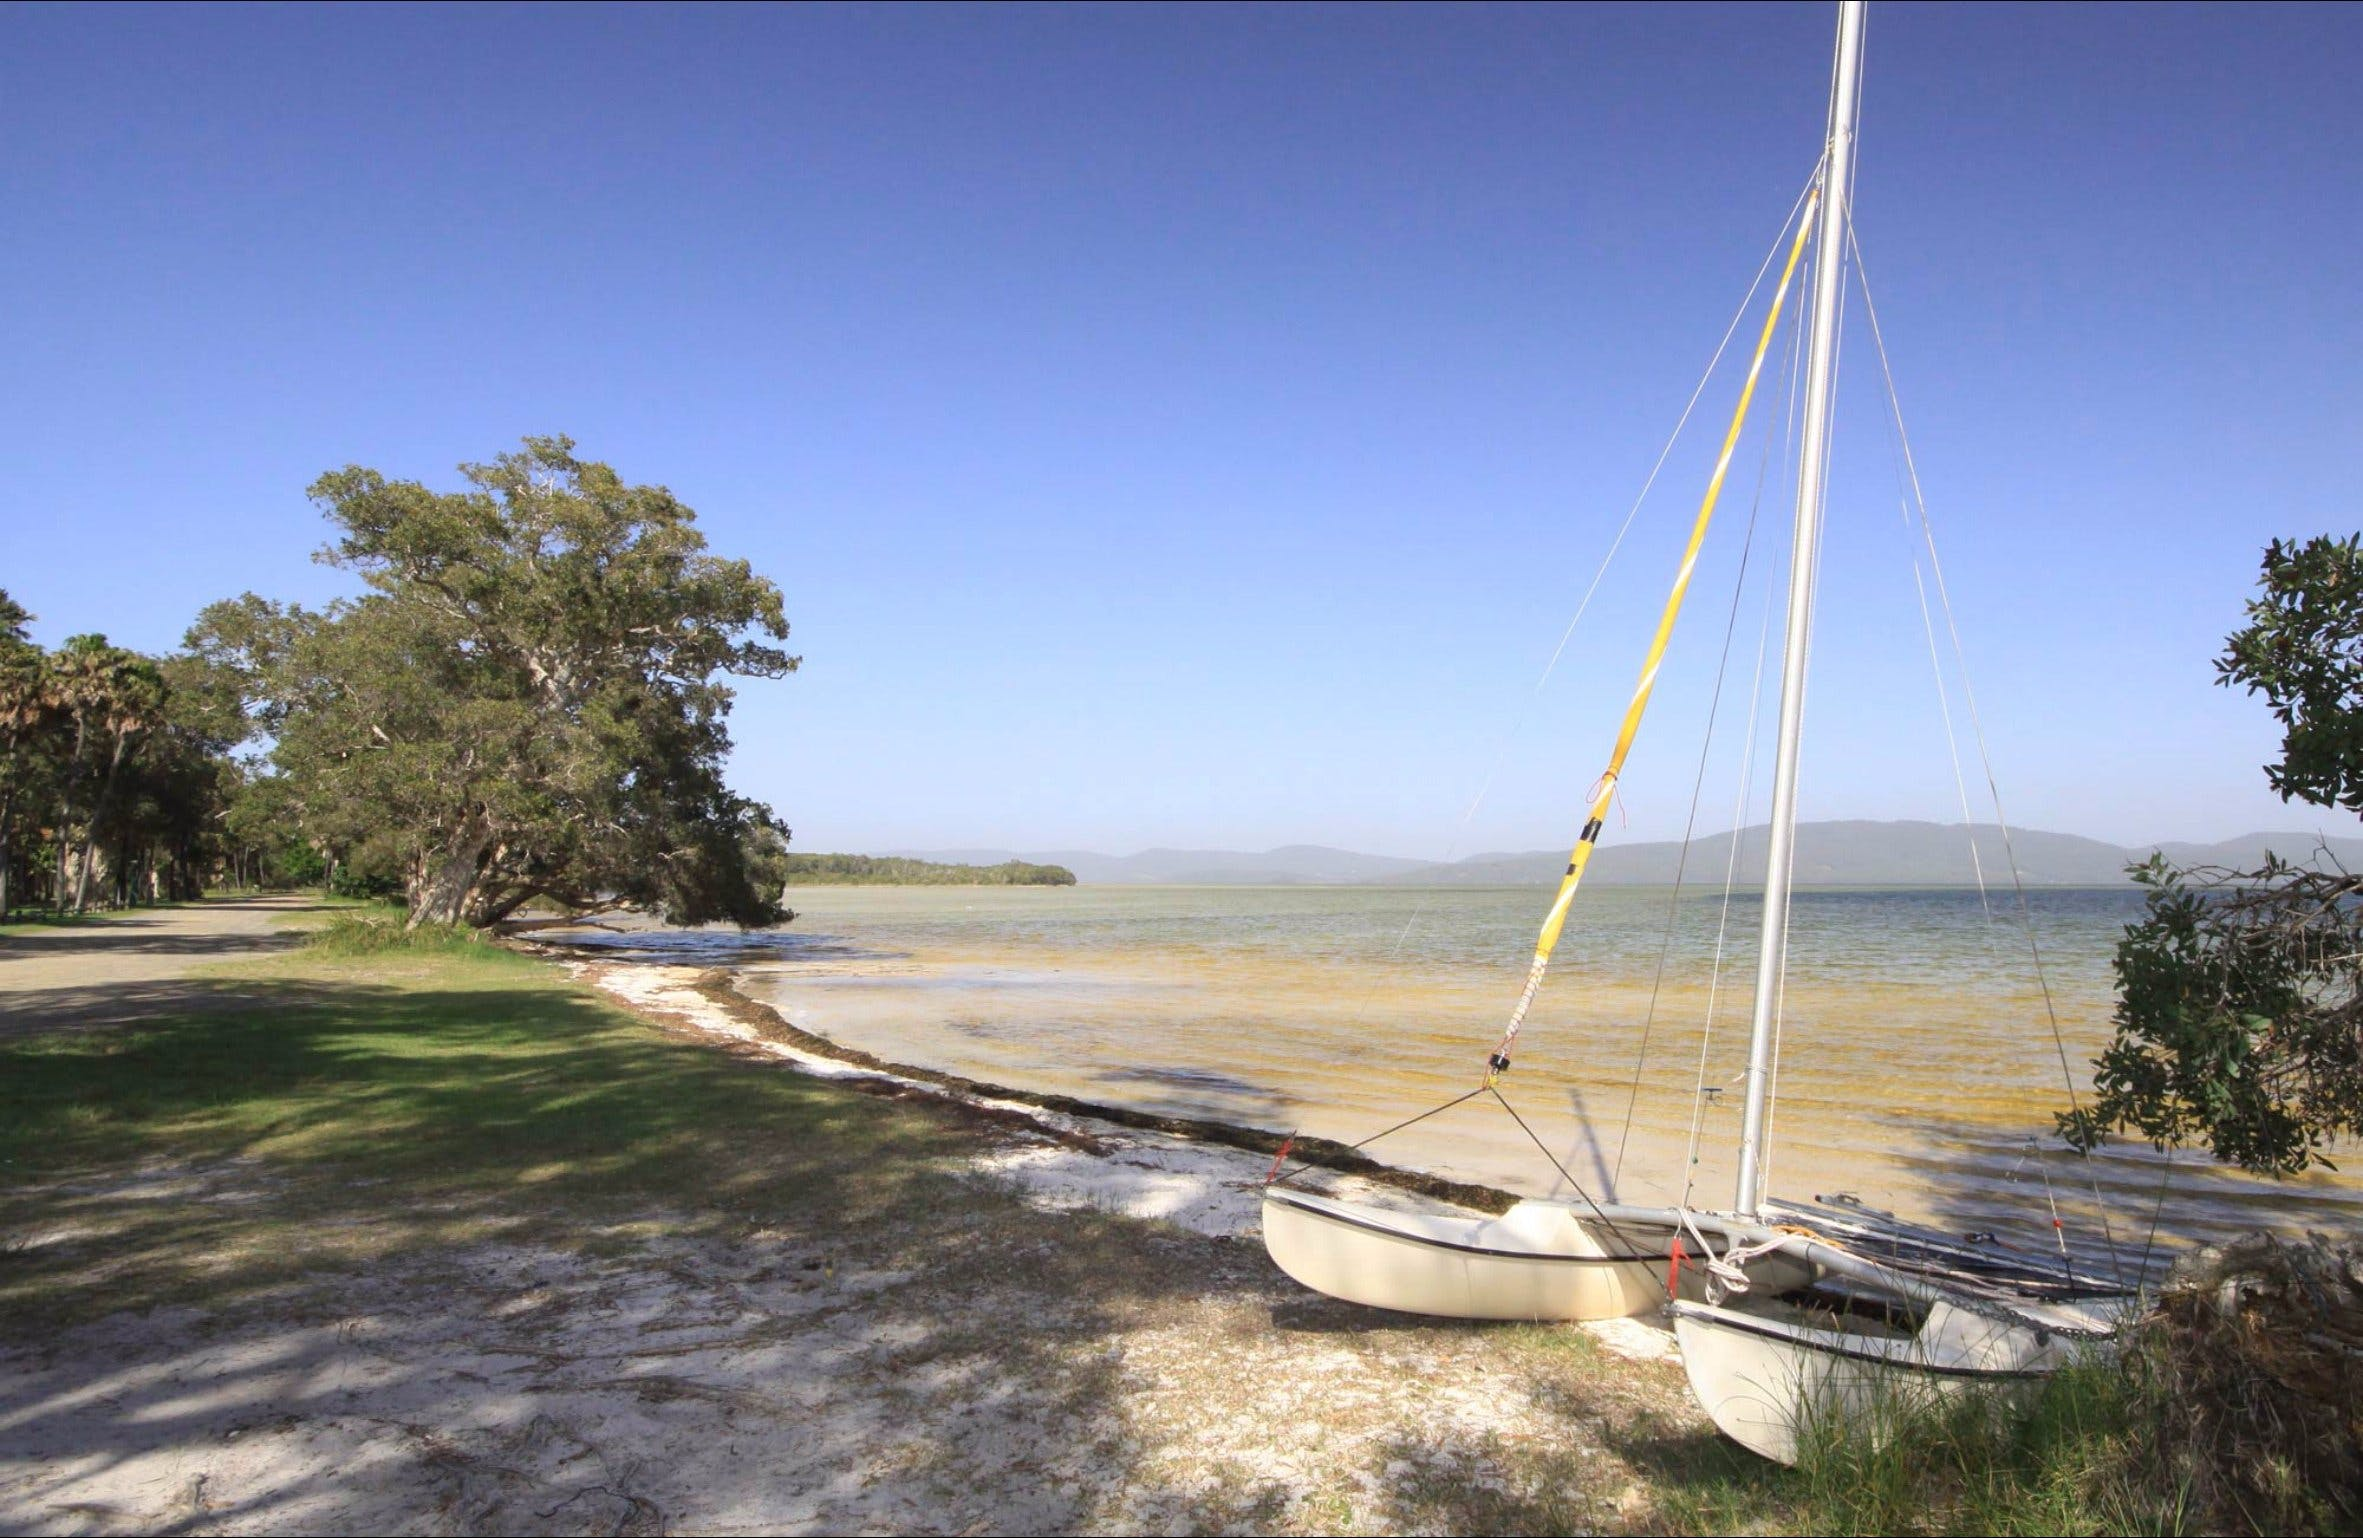 Sailing Club picnic area - Accommodation Gold Coast